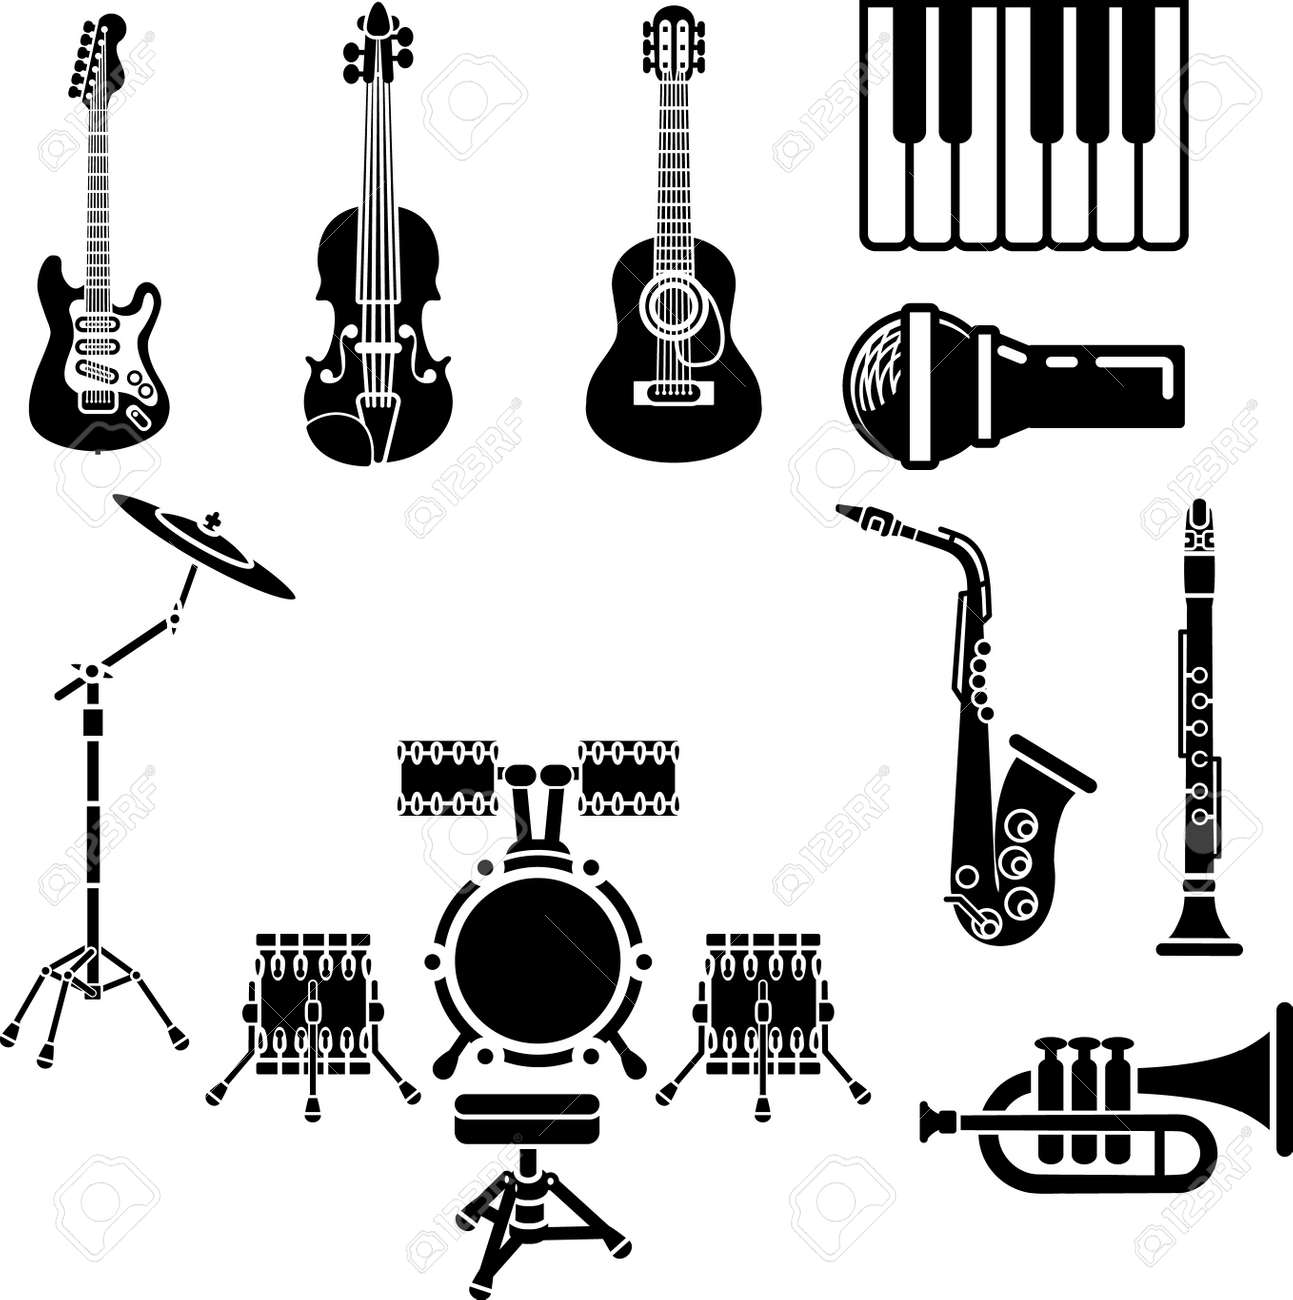 A vector icon set of musical instrument simple outline silhouettes Stock Vector - 3104834